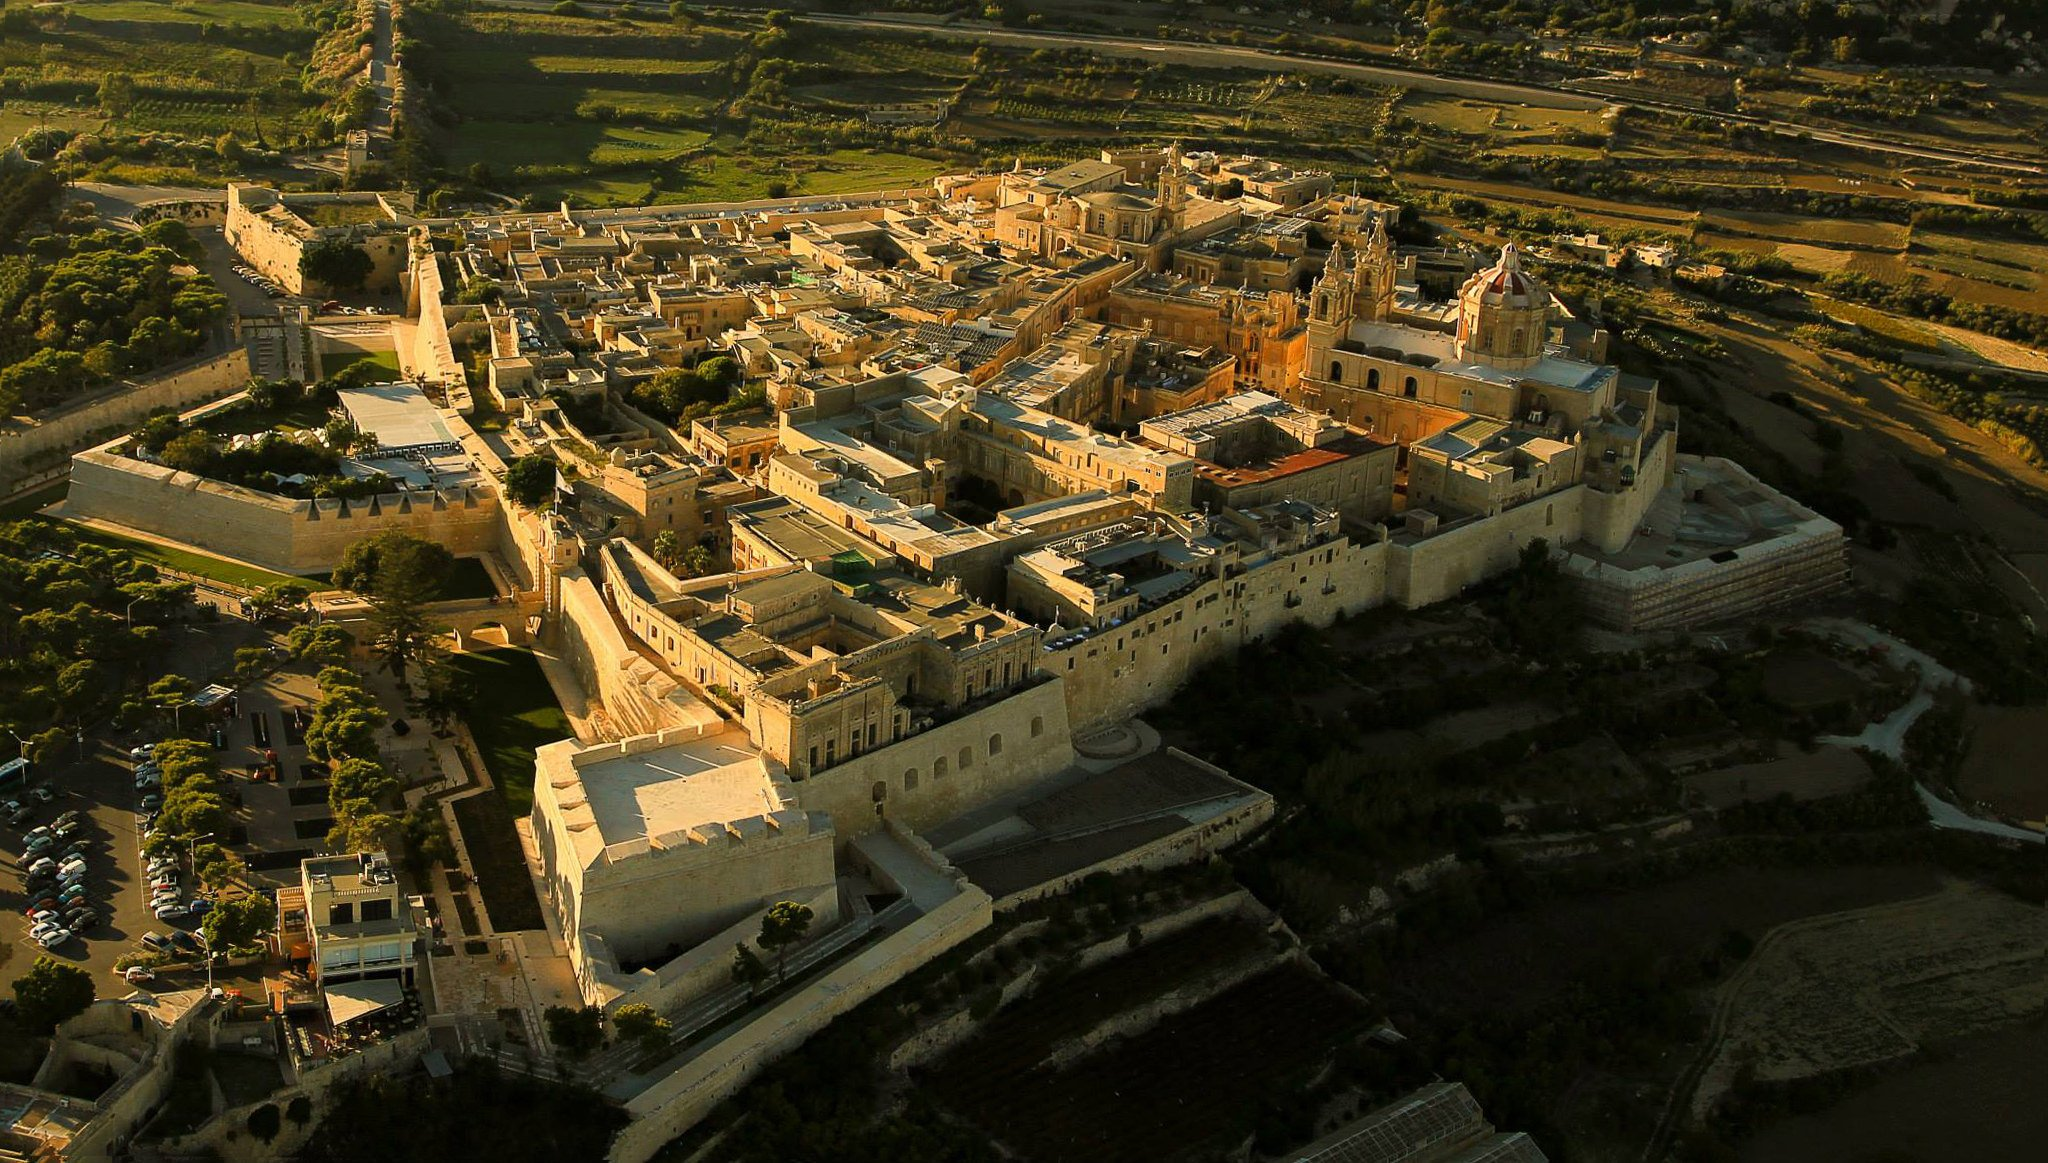 The Ancient Walled City of Mdina, as featured in the TV series Game of Thrones